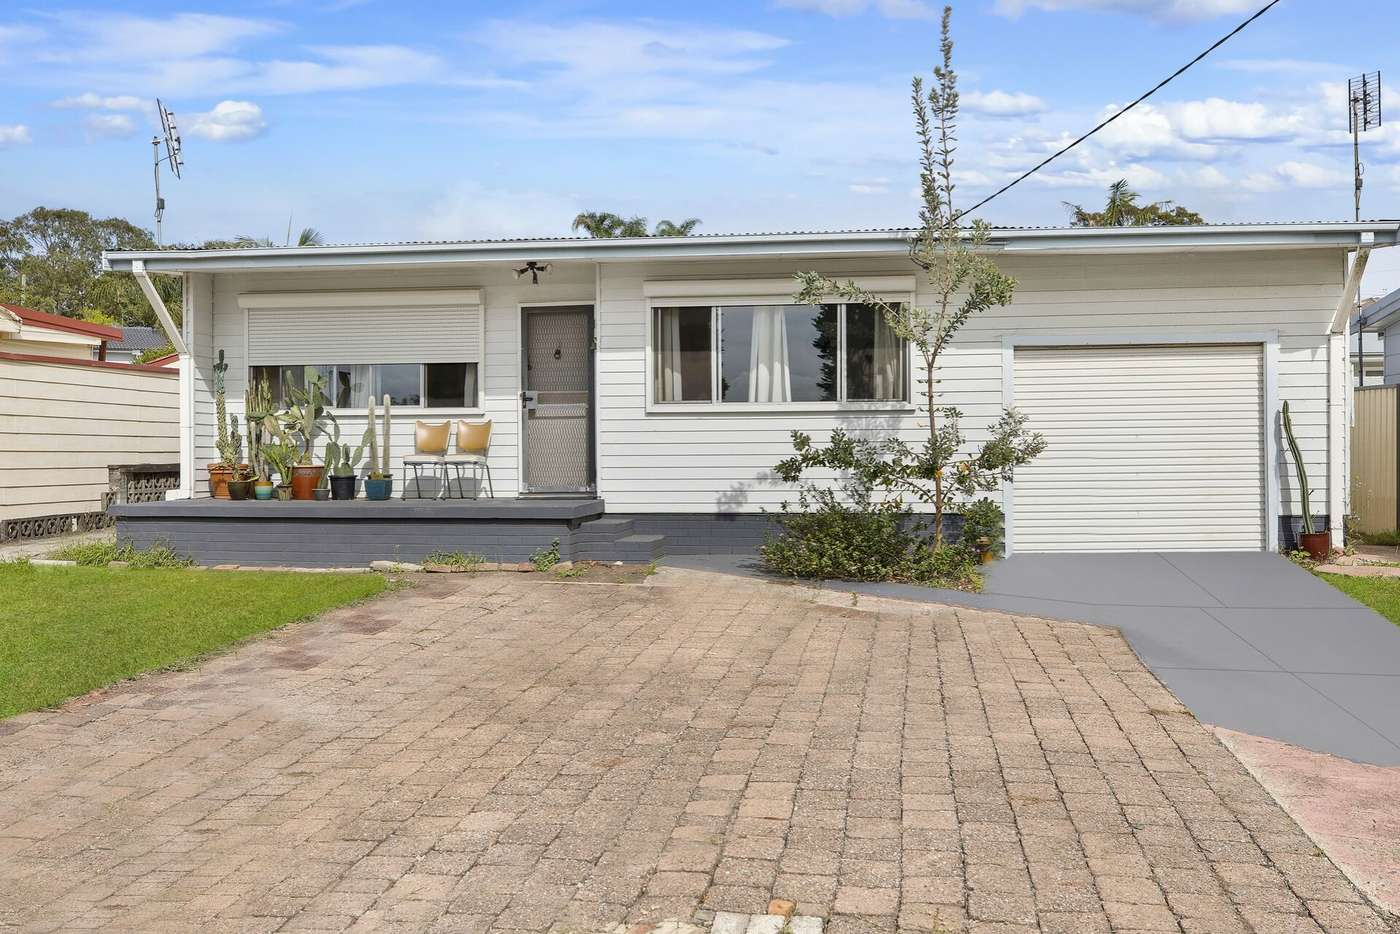 Main view of Homely house listing, 10 Delia Avenue, Budgewoi NSW 2262